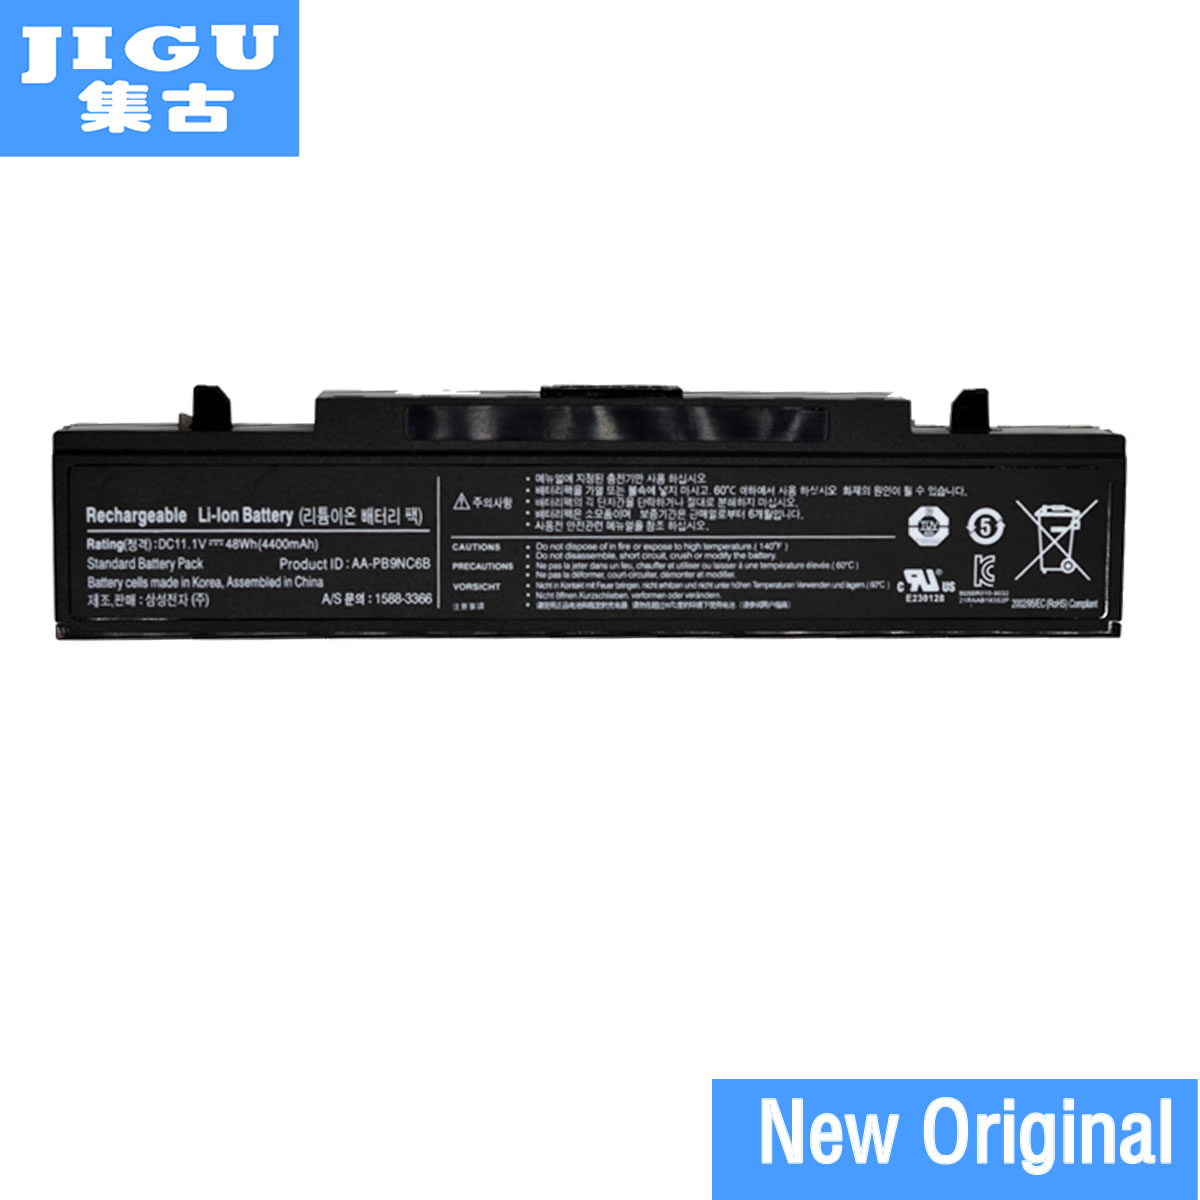 JIGU Original Laptop <font><b>Battery</b></font> For <font><b>SAMSUNG</b></font> R470 R478 R480 R500 R507 R517 R518 <font><b>R519</b></font> R520 R522 R530 R540 R580 R590 R700 image